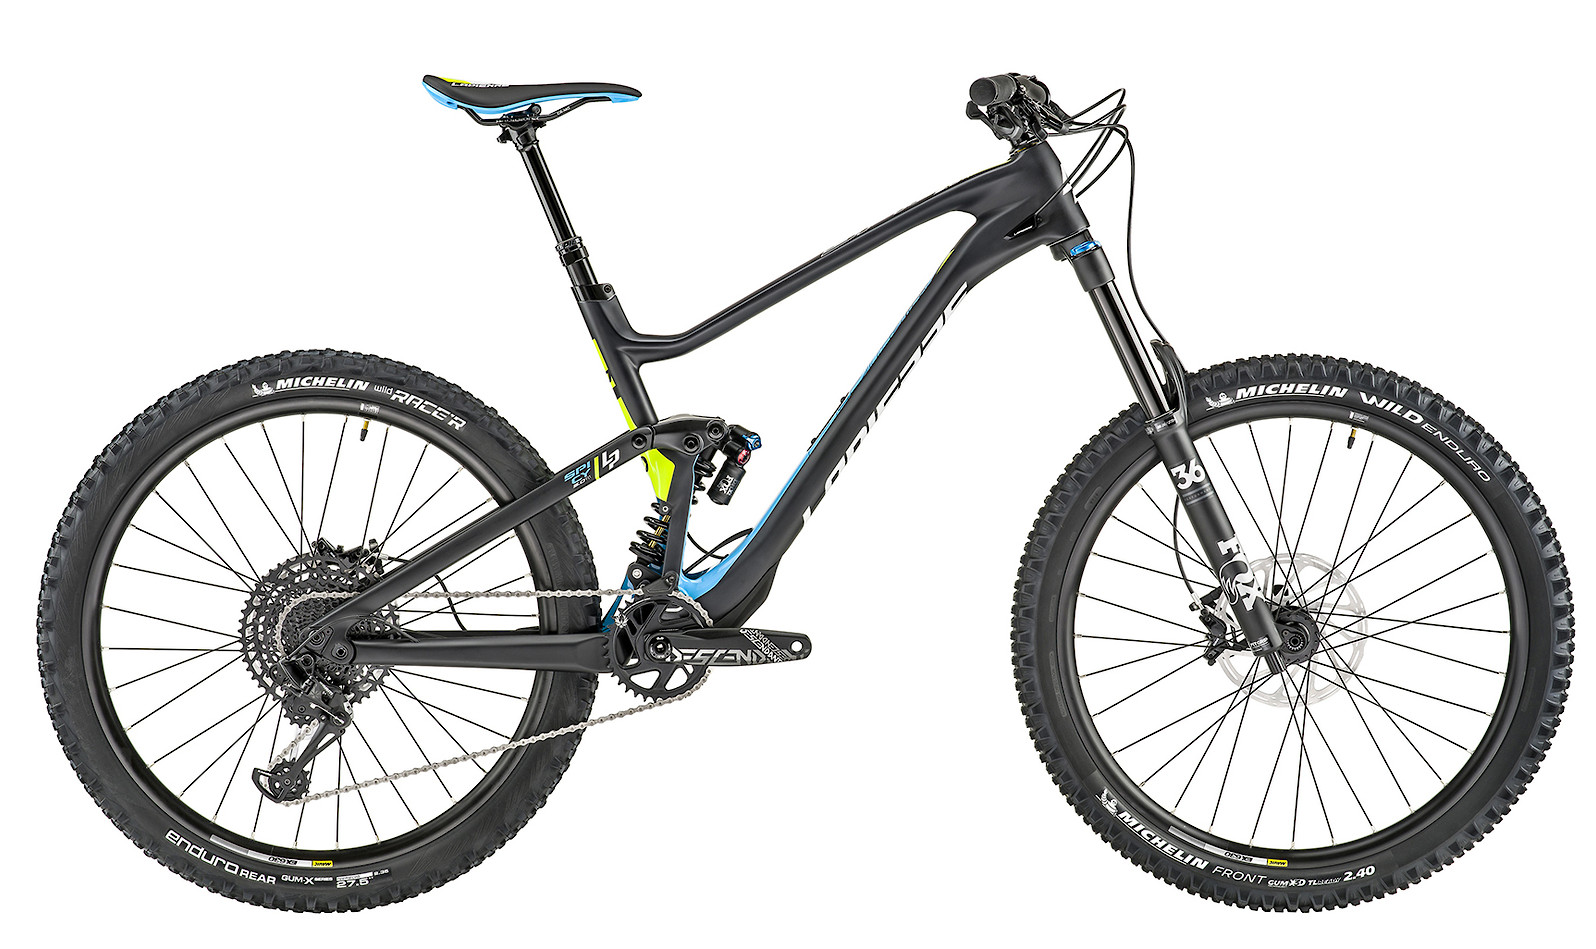 2019 Lapierre Spicy 5 Ultimate 27.5